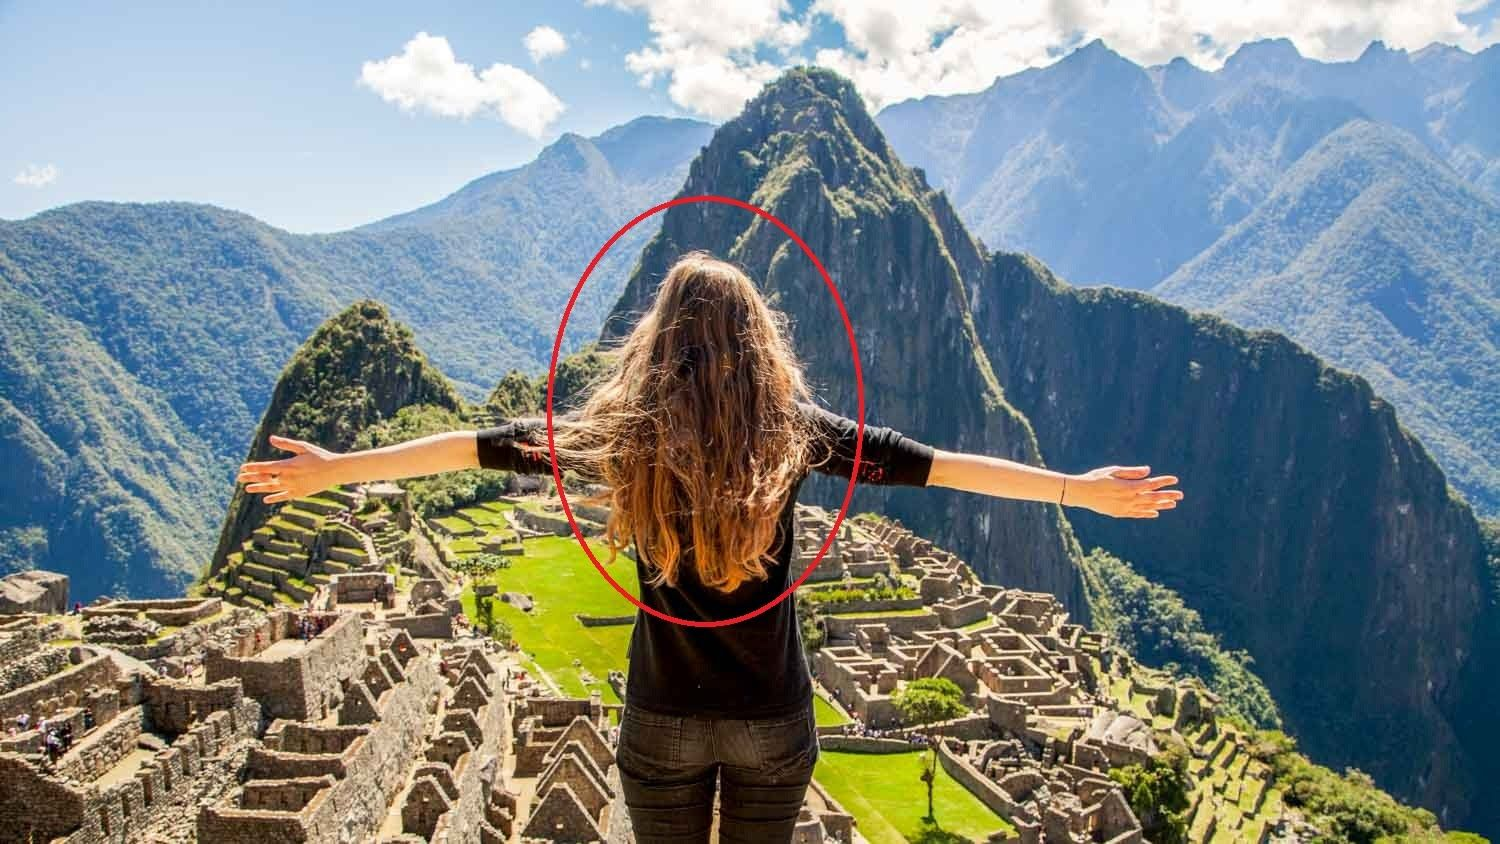 See That What Happened With This Girl In Machu Picchu With My Galaxy Cool Places To Visit Places To Visit Picchu